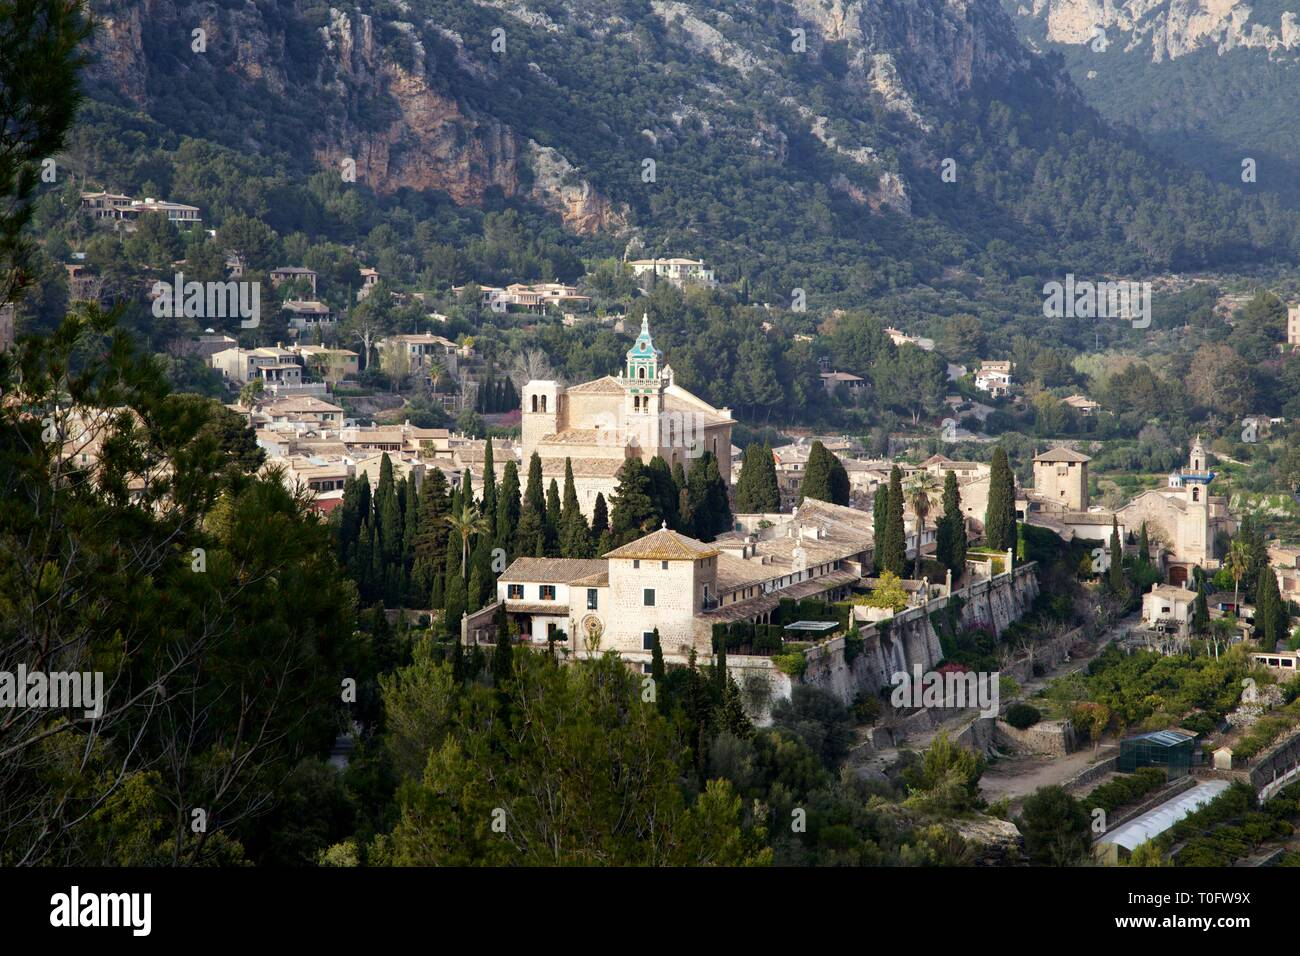 Panoramic view of the Spanish village of Valldemossa, Mallorca with the famous Cartuja Monastery nestled in the mountains on a sunny day - Stock Image